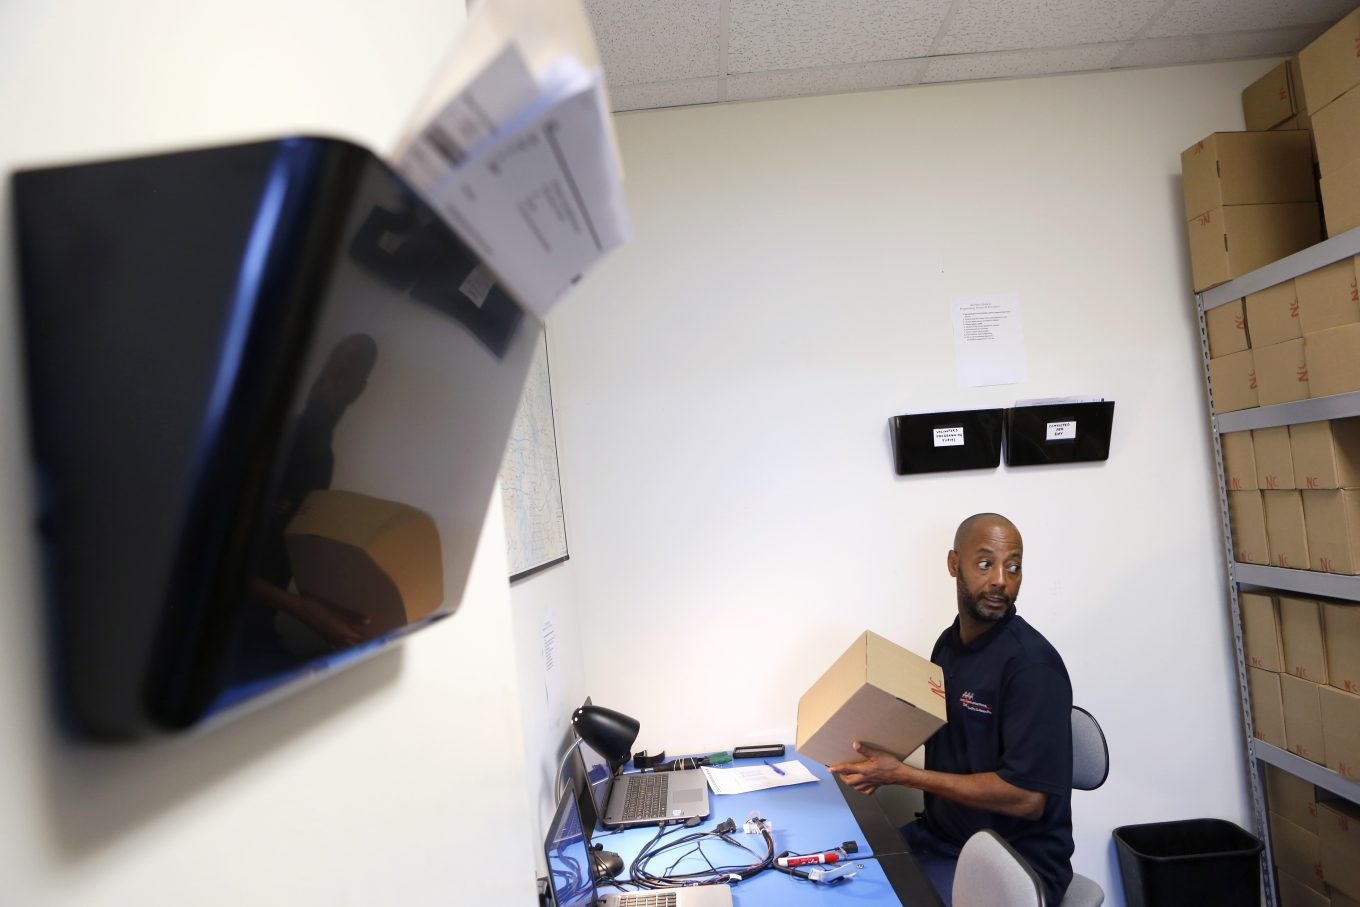 Programmer Angelo Collins works on transit validators for DART at AAA Data Communications Inc. in Dallas. Photo/Lara Solt